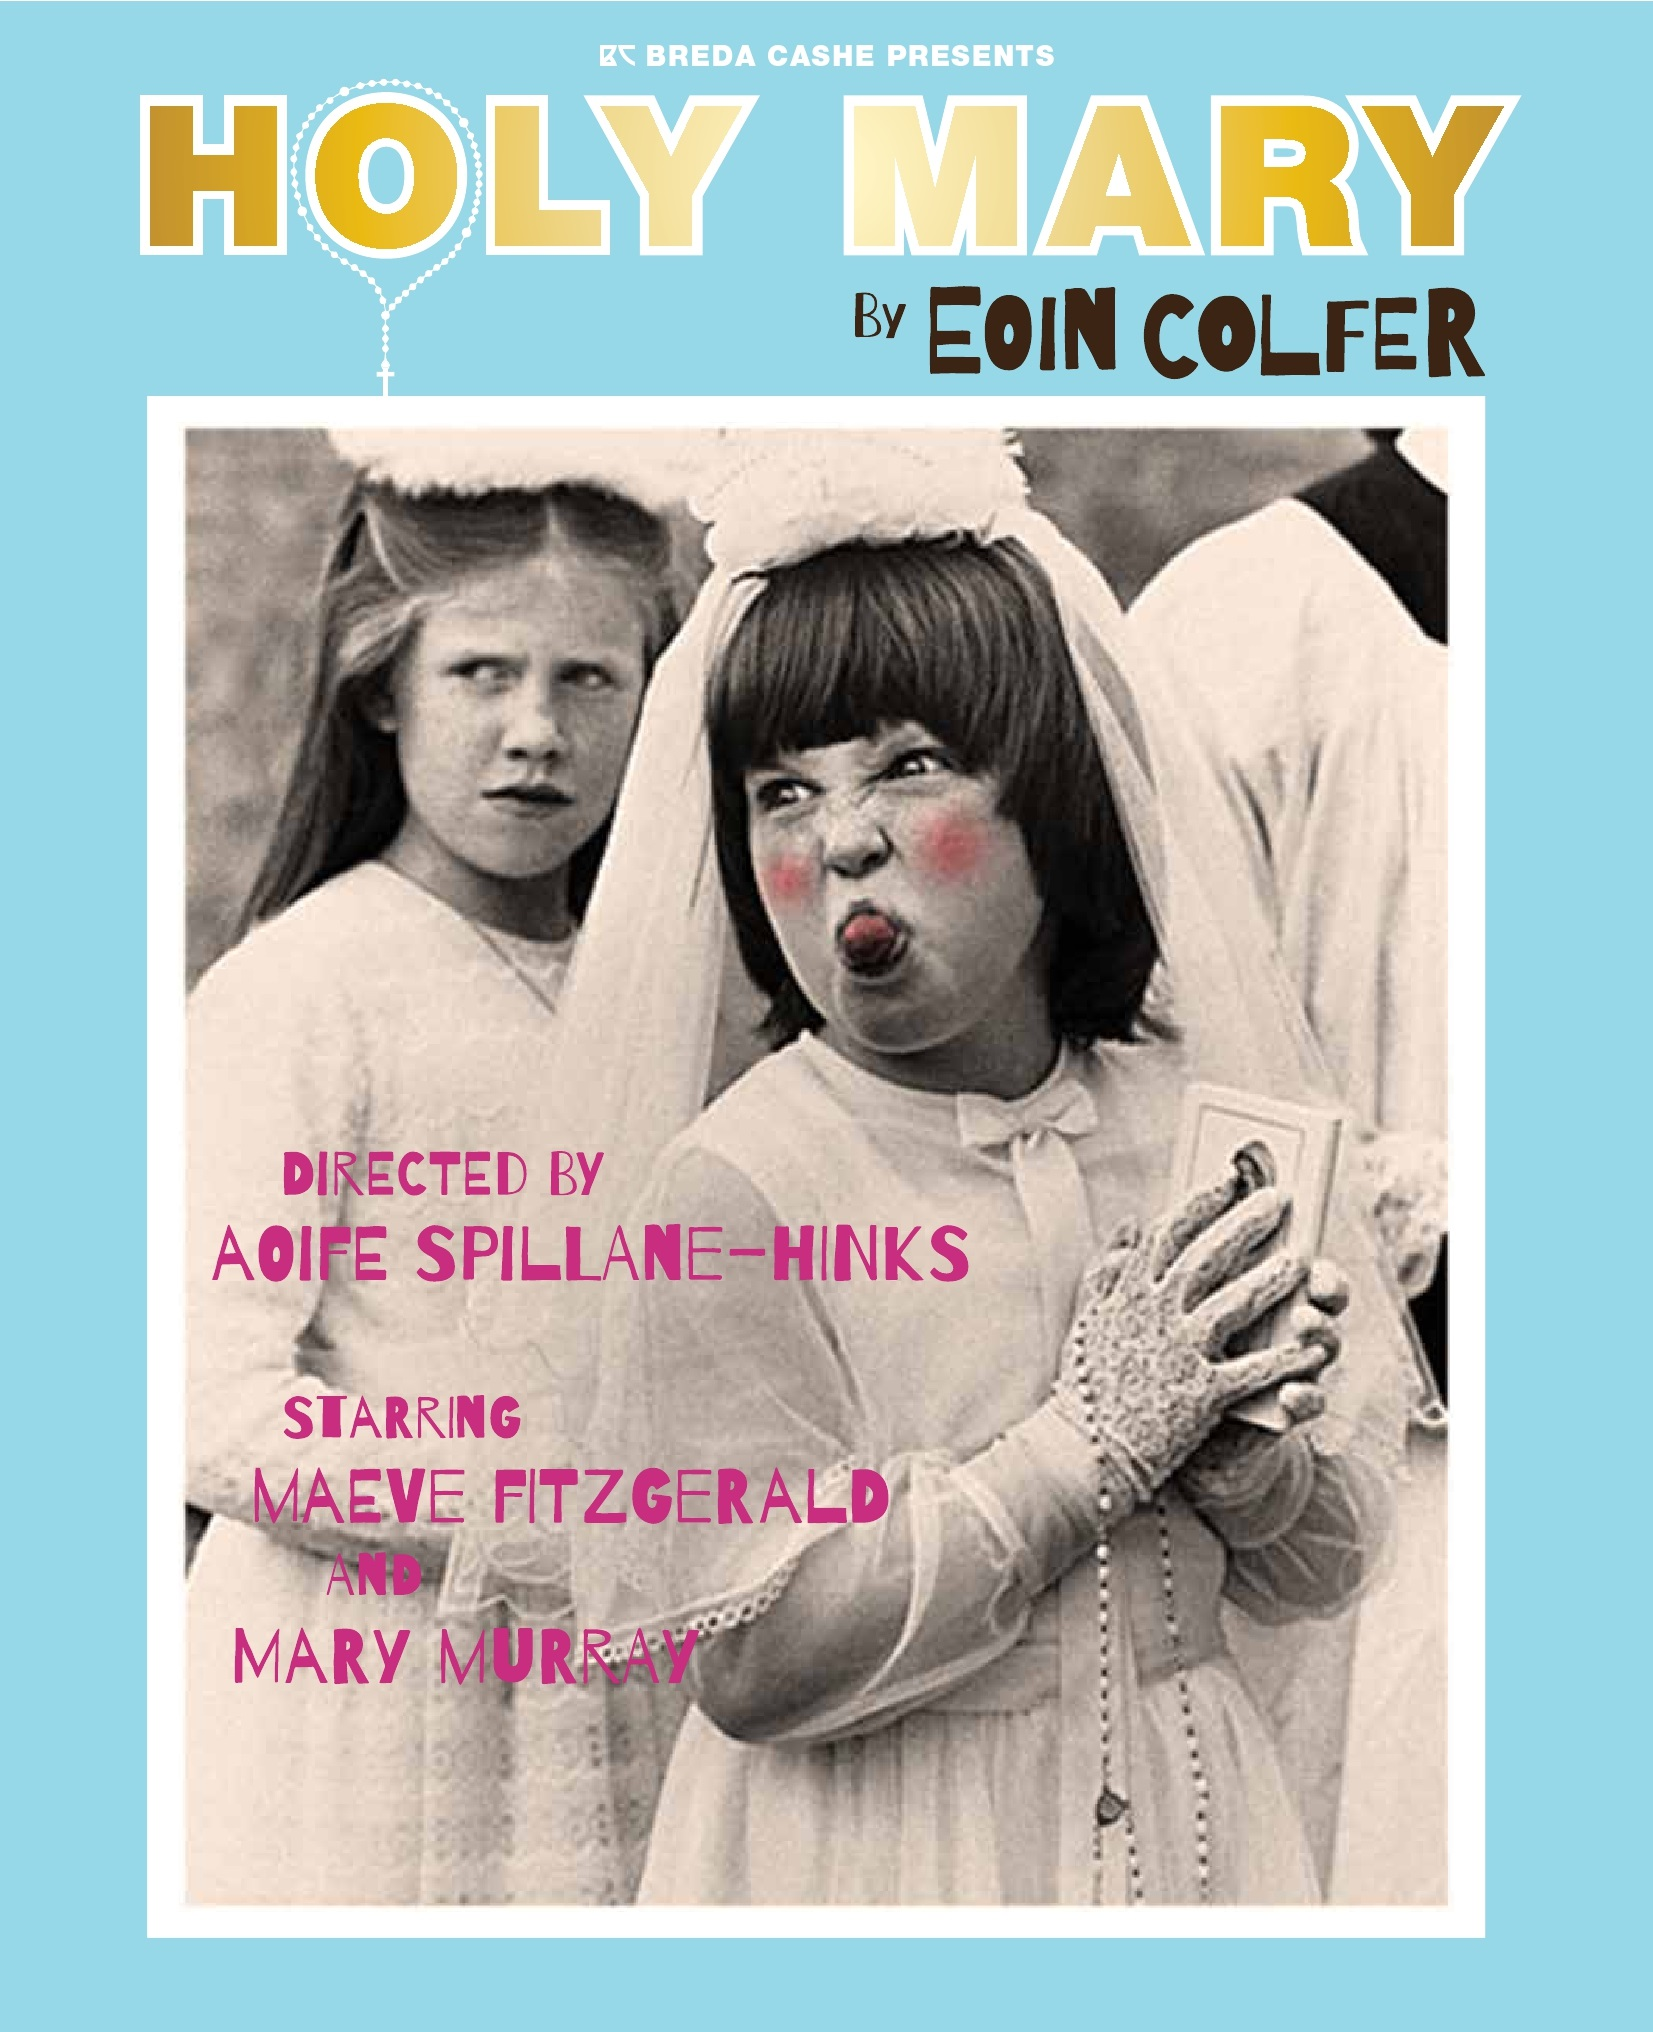 Holy Mary by Eoin Colfer at The Theatre Royal